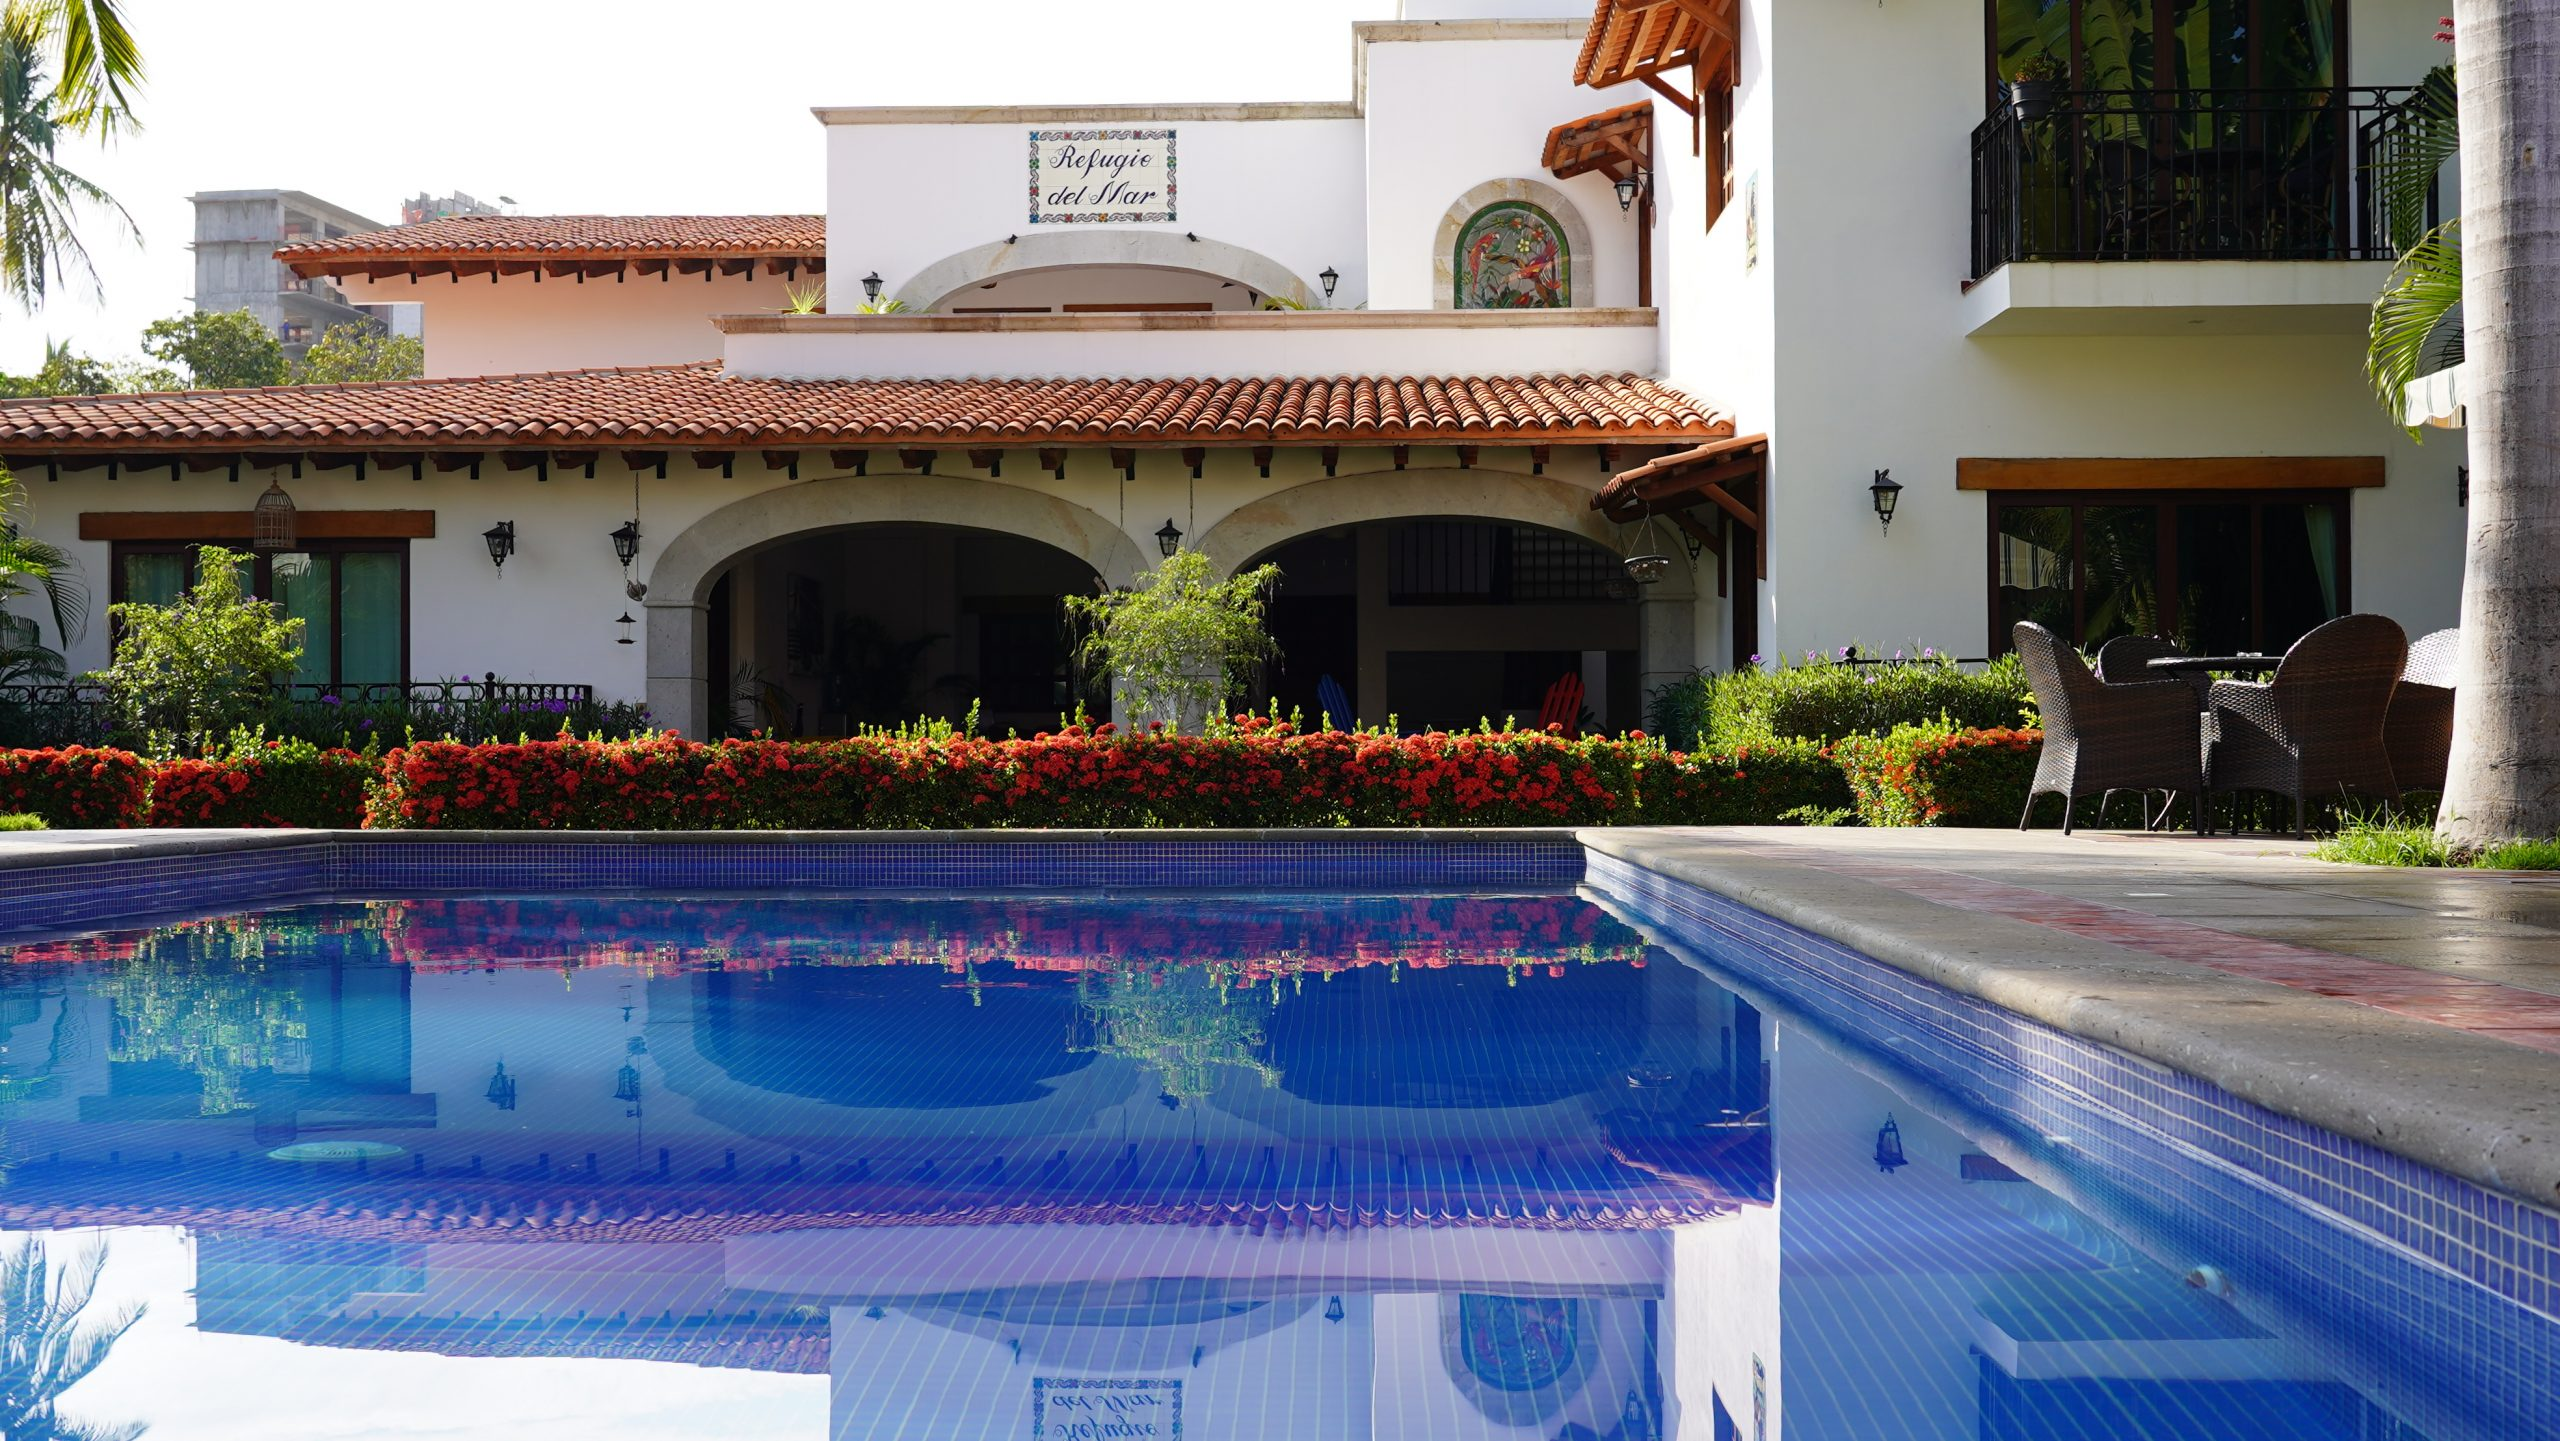 Happy Retirement Living: Cohousing with Friends in Mexico – Hacienda Style